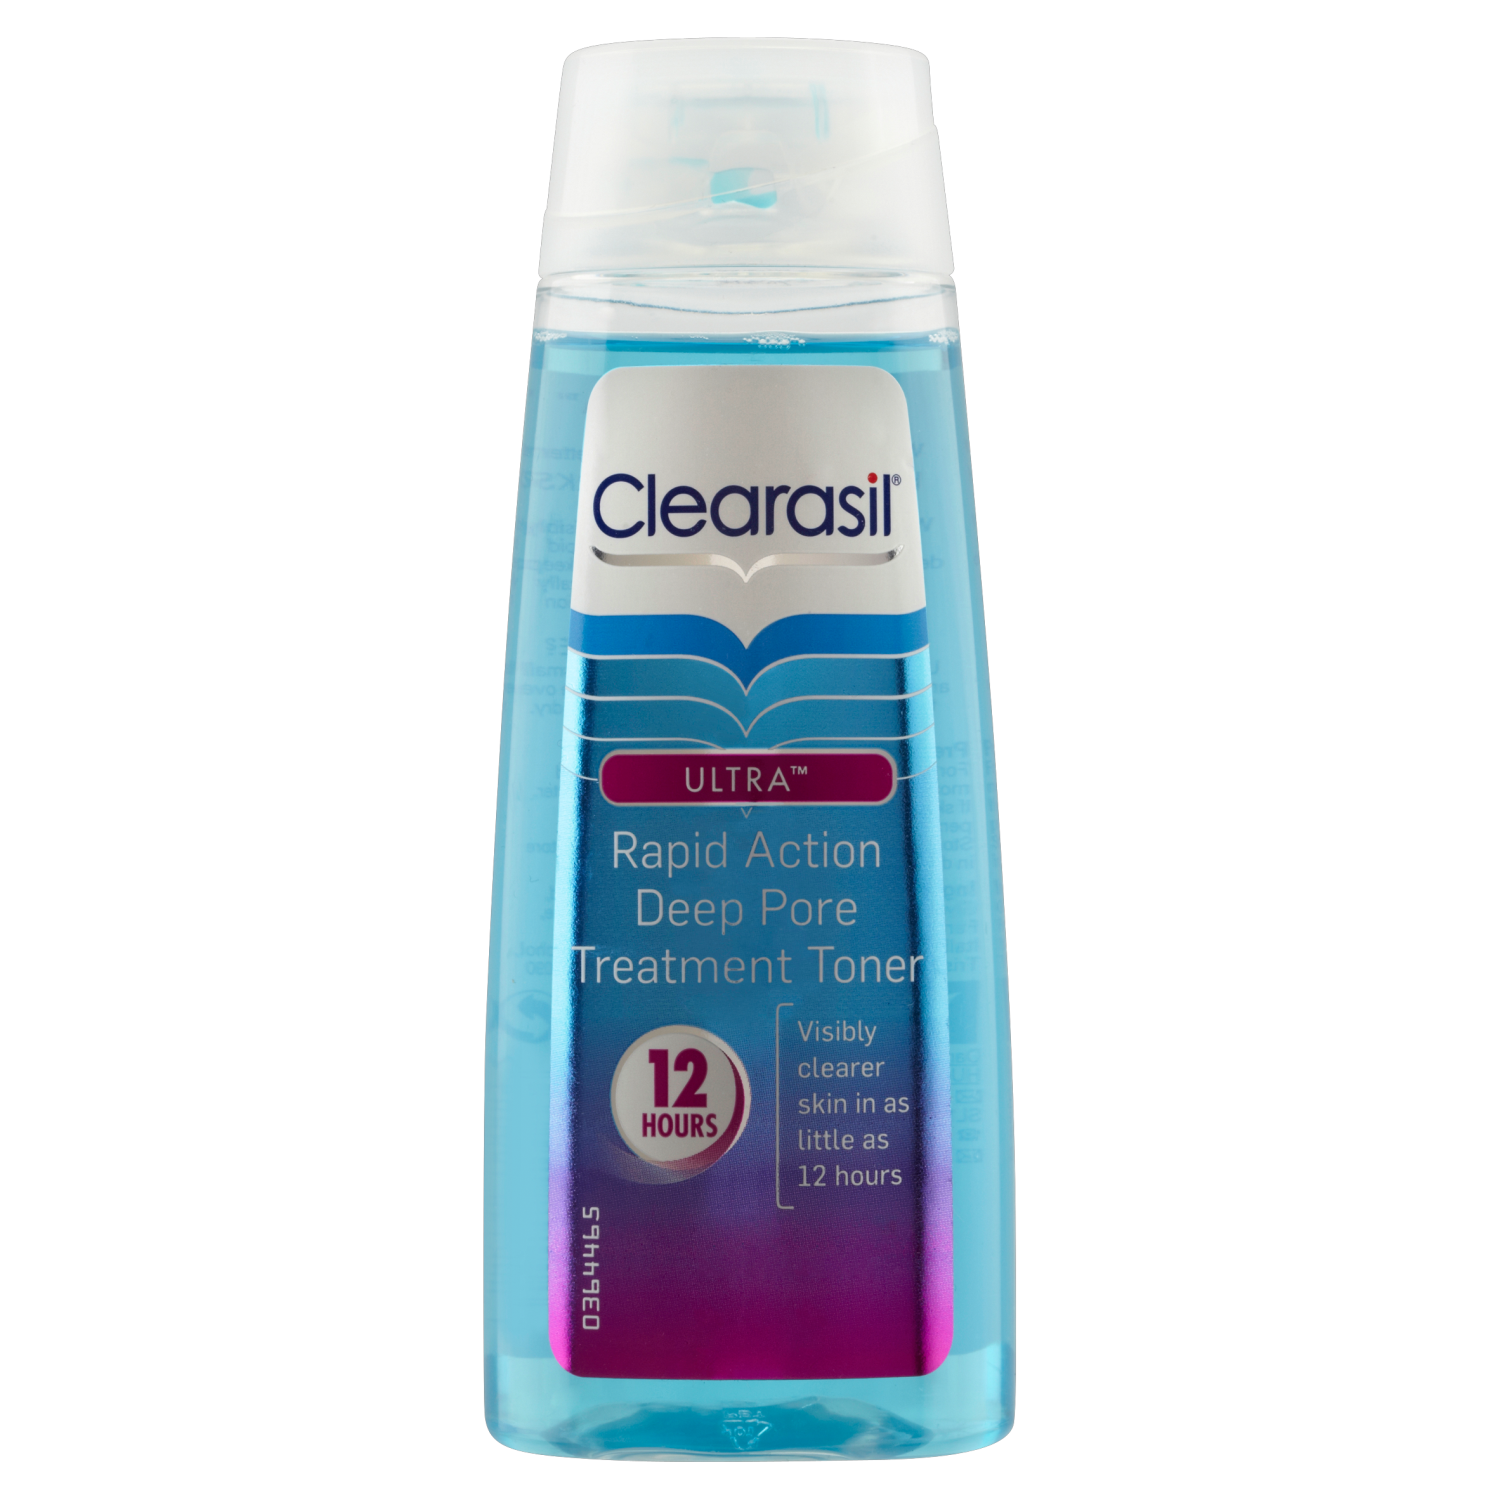 Clearasil Ultra Rapid Action Deep Pore Treatment Toner 200ml